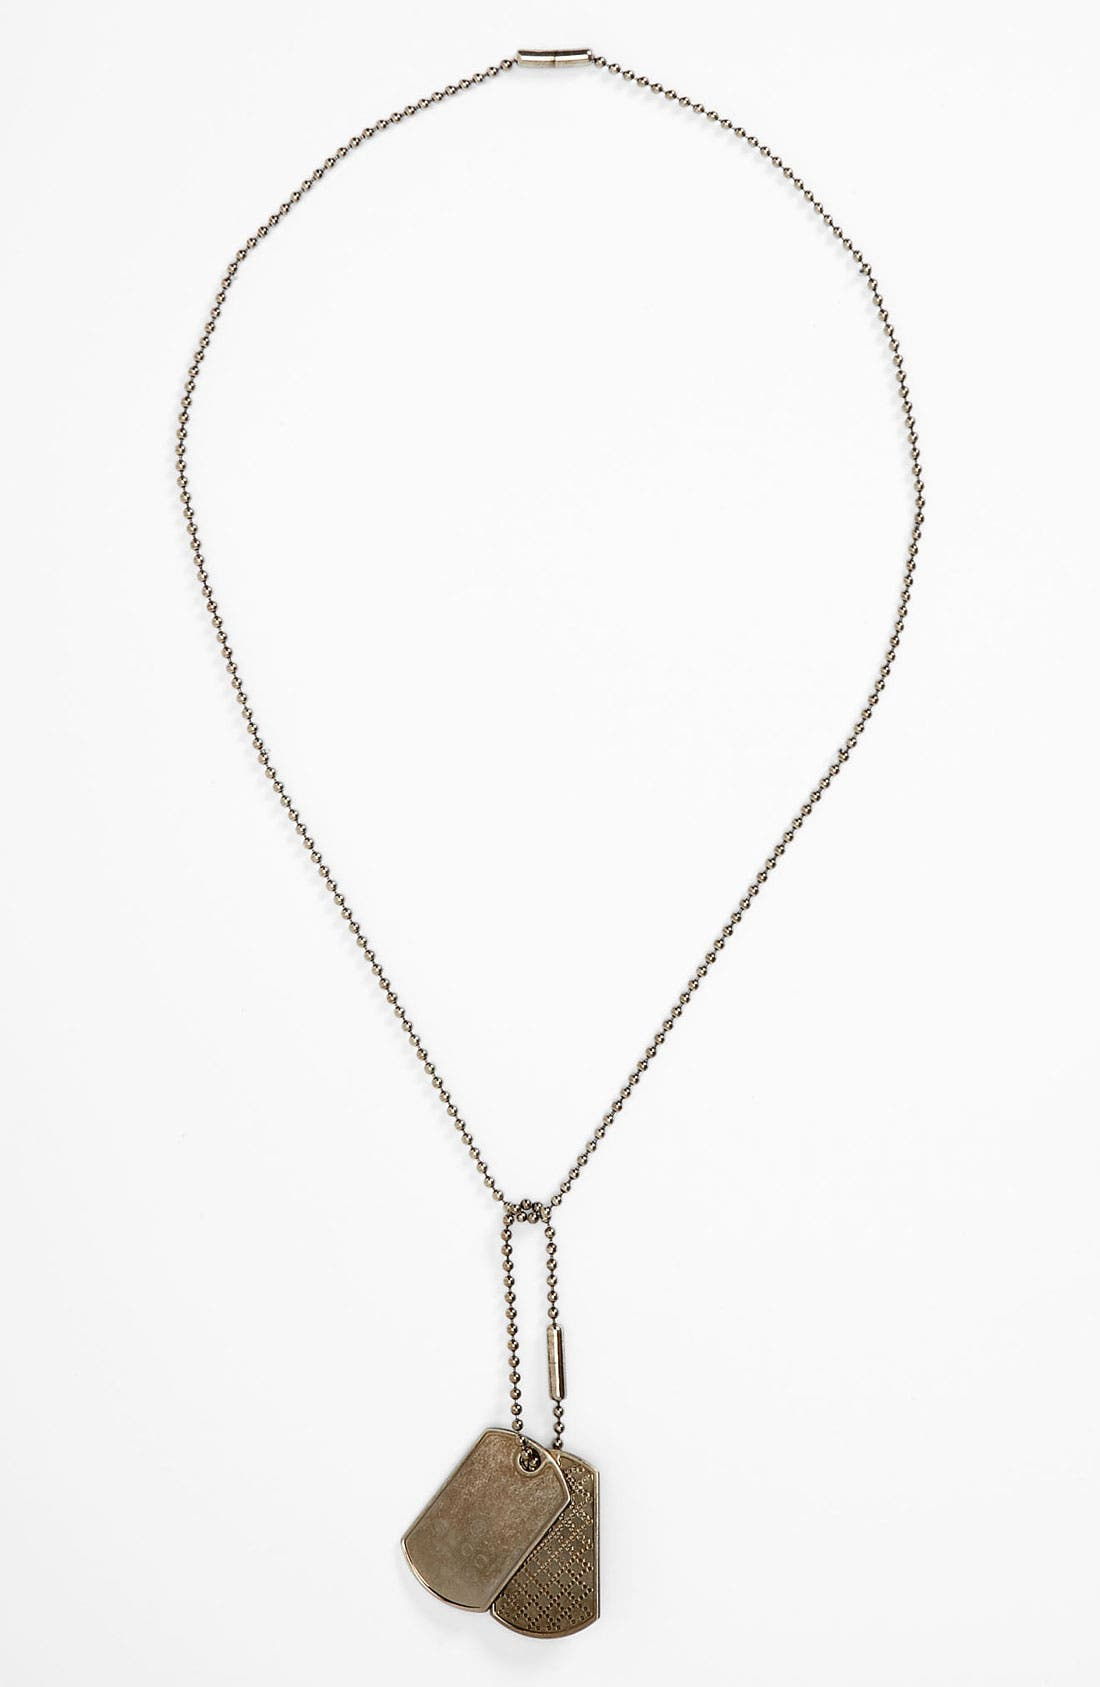 Main Image - Gucci Dog Tag Necklace